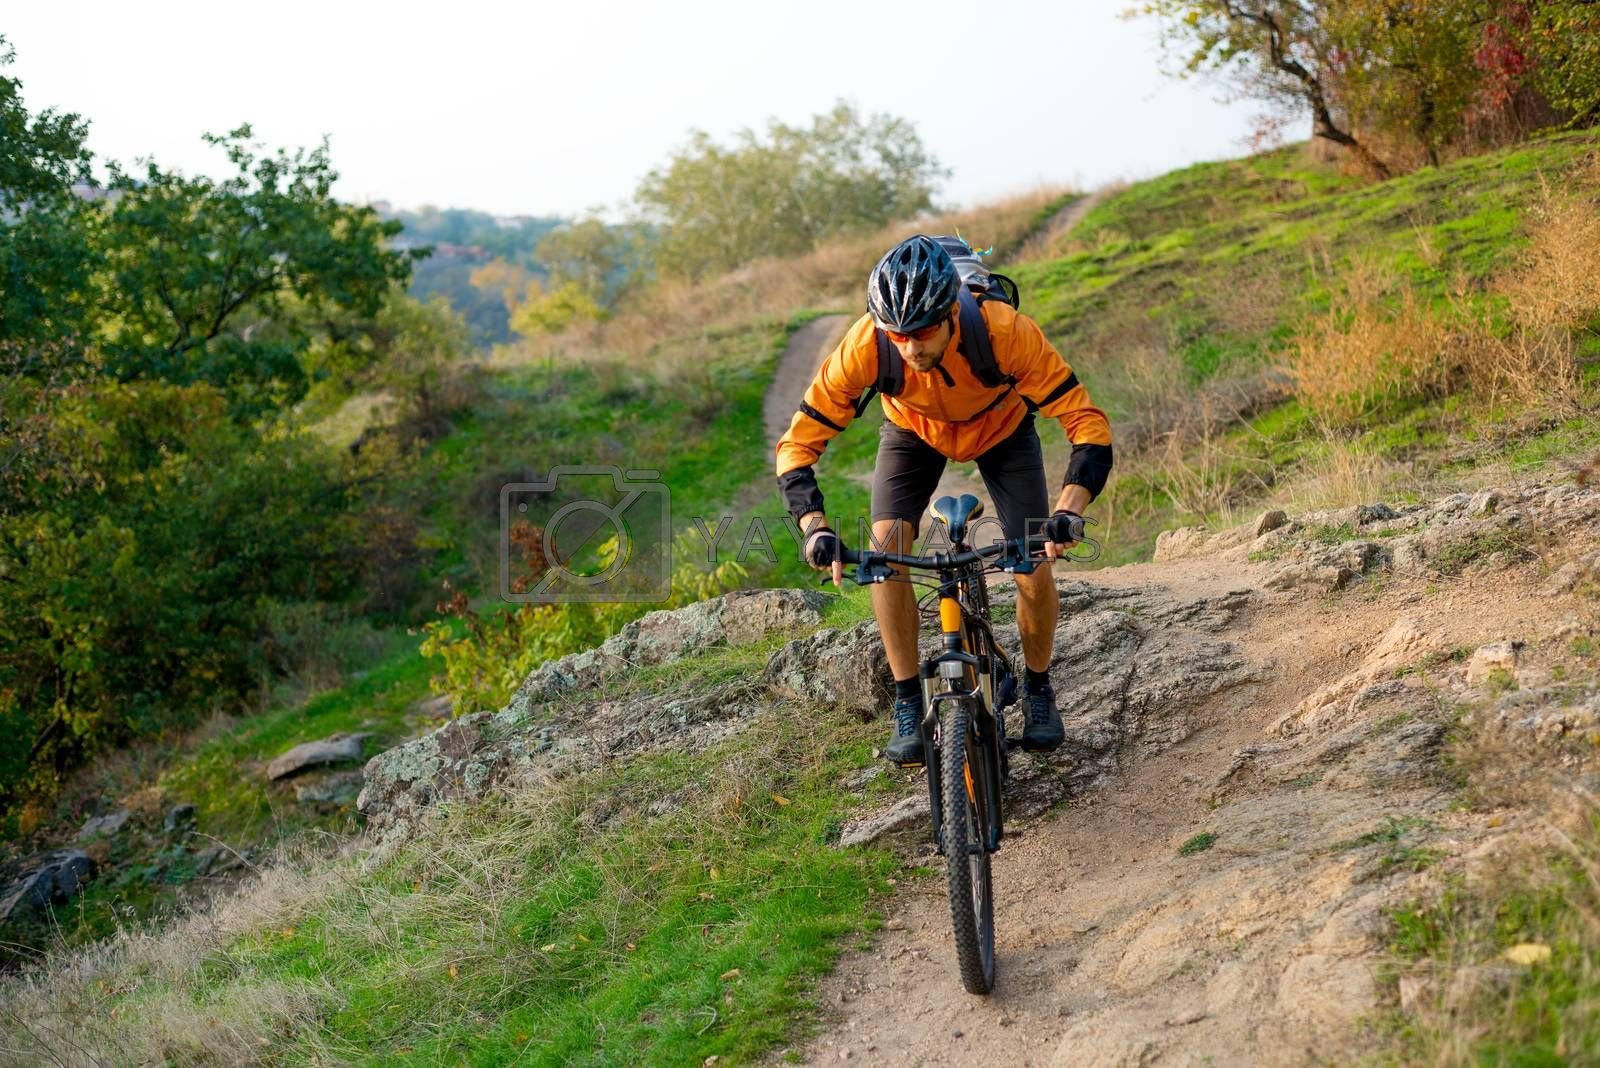 Cyclist in Orange Riding the Mountain Bike on the Autumn Rocky Trail. Extreme Sport and Enduro Biking Concept. by maxpro